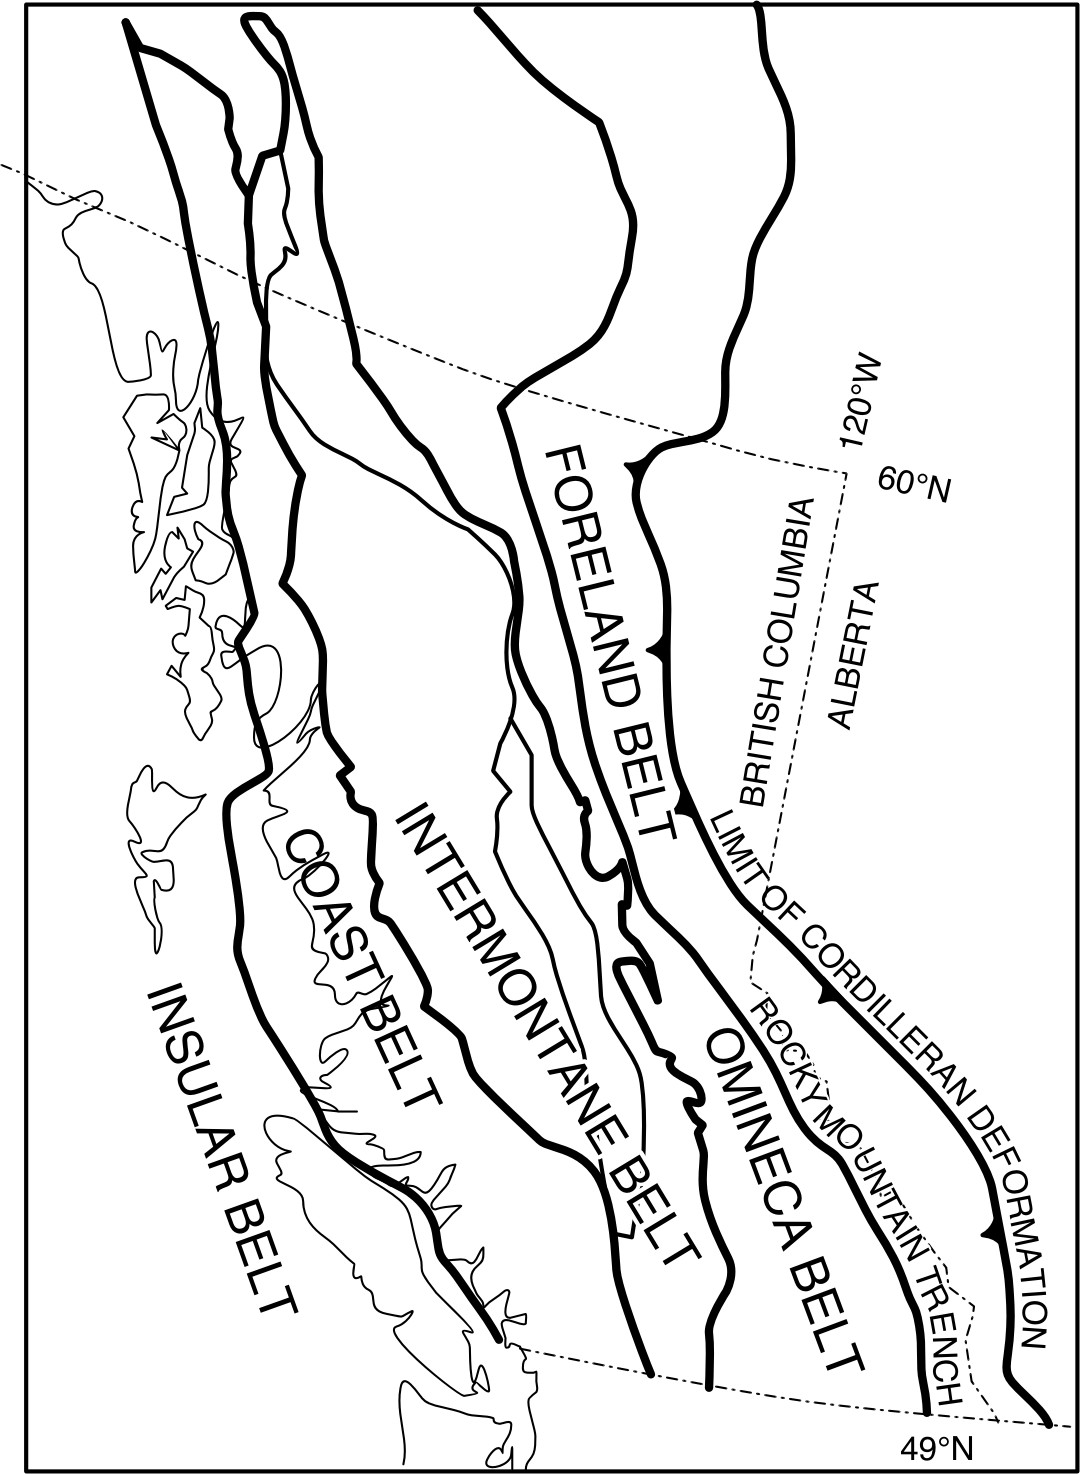 Fold And Thrust Belt Slides J Waldron And Others